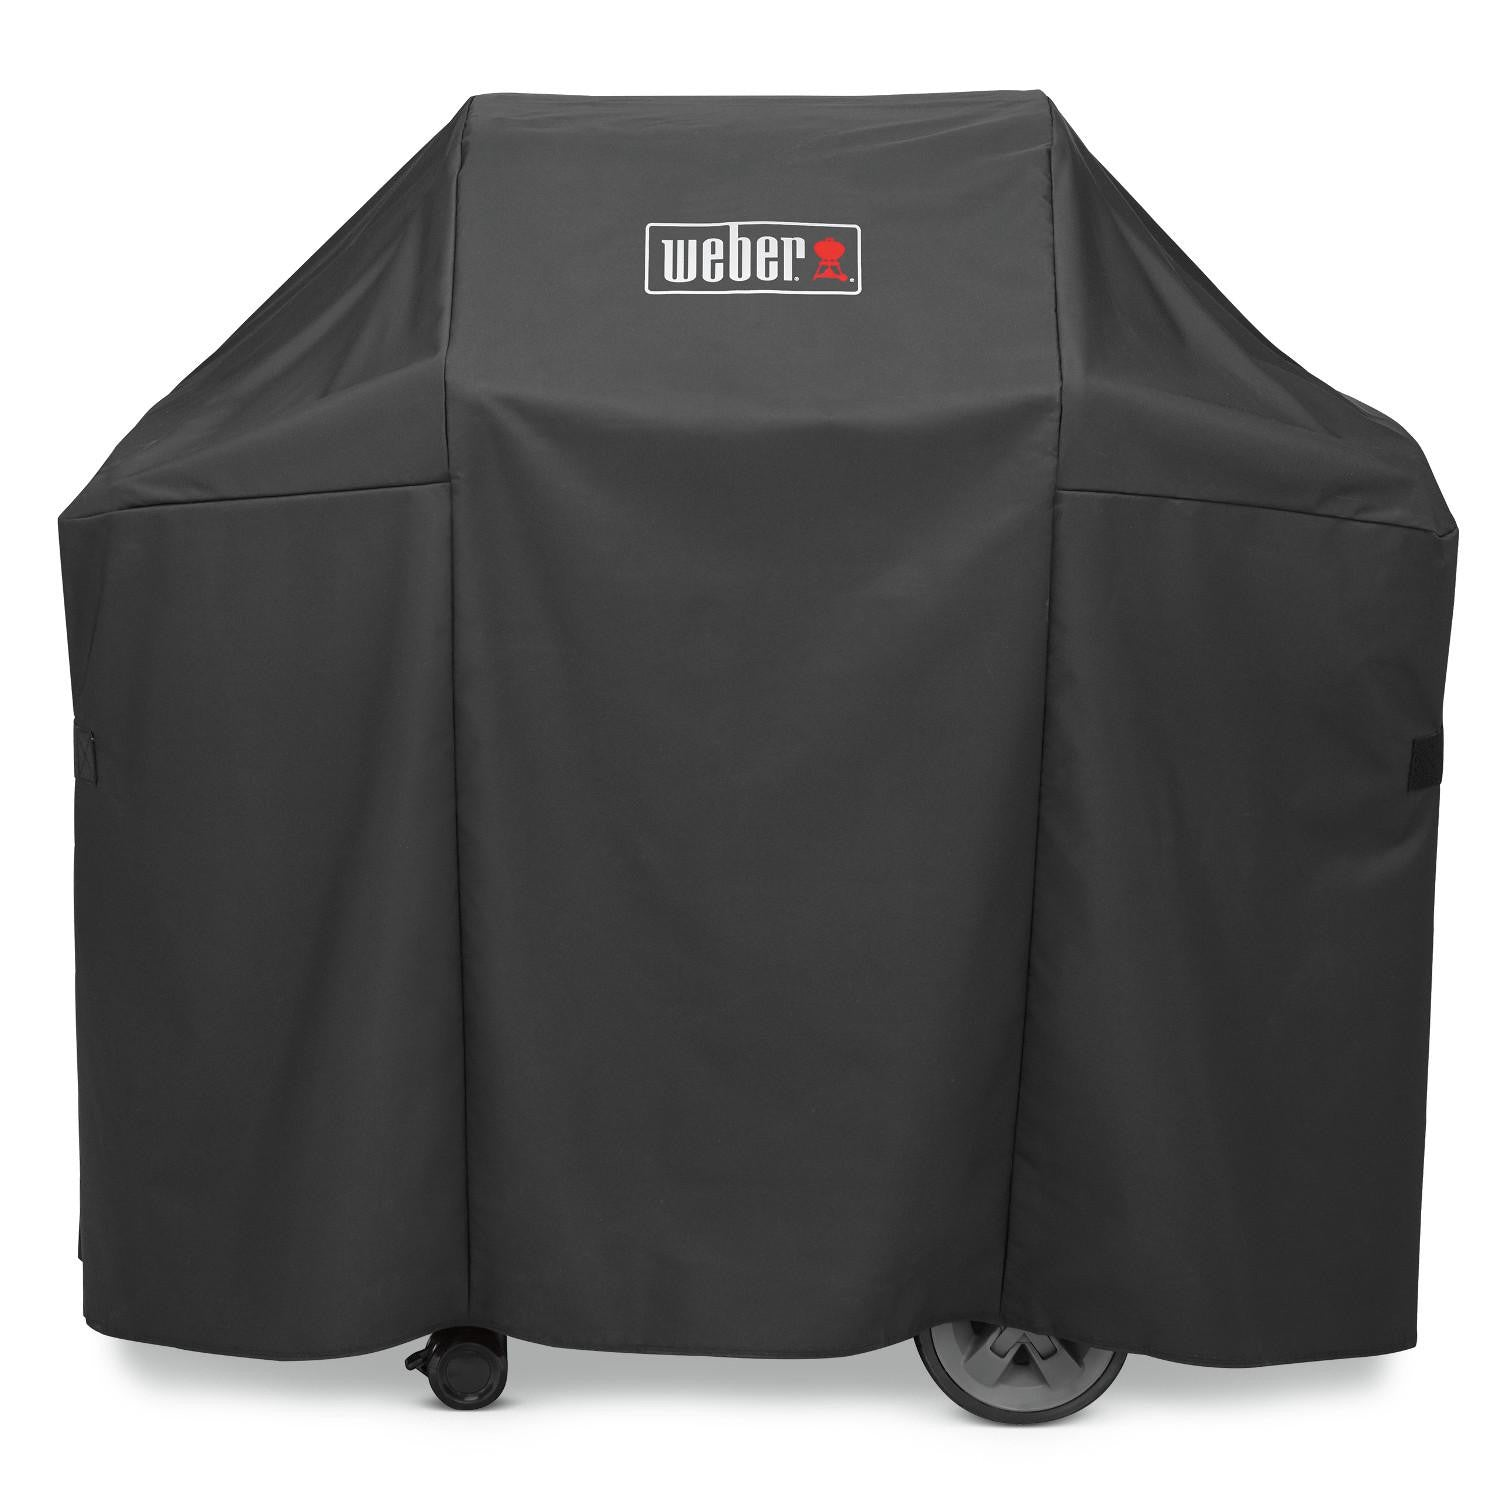 Weber 7129 Premium Polyester Genesis II 2B Grill Cover